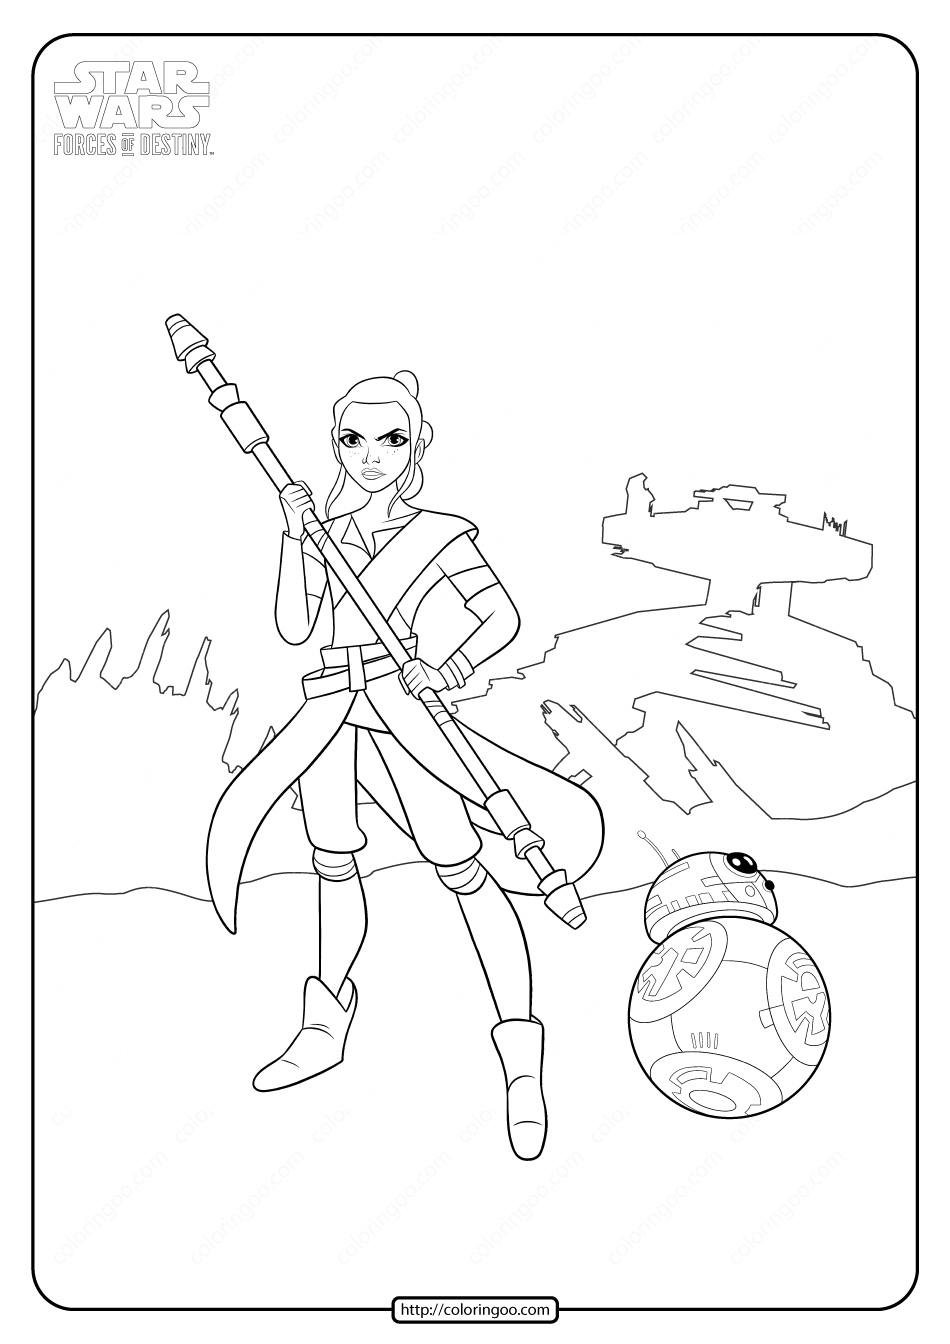 Star Wars Forces Of Destiny Coloring Page High Quality Free Printable Coloring Drawing Painting Pag In 2021 Star Wars Coloring Book Coloring Pages Star Wars Cartoon